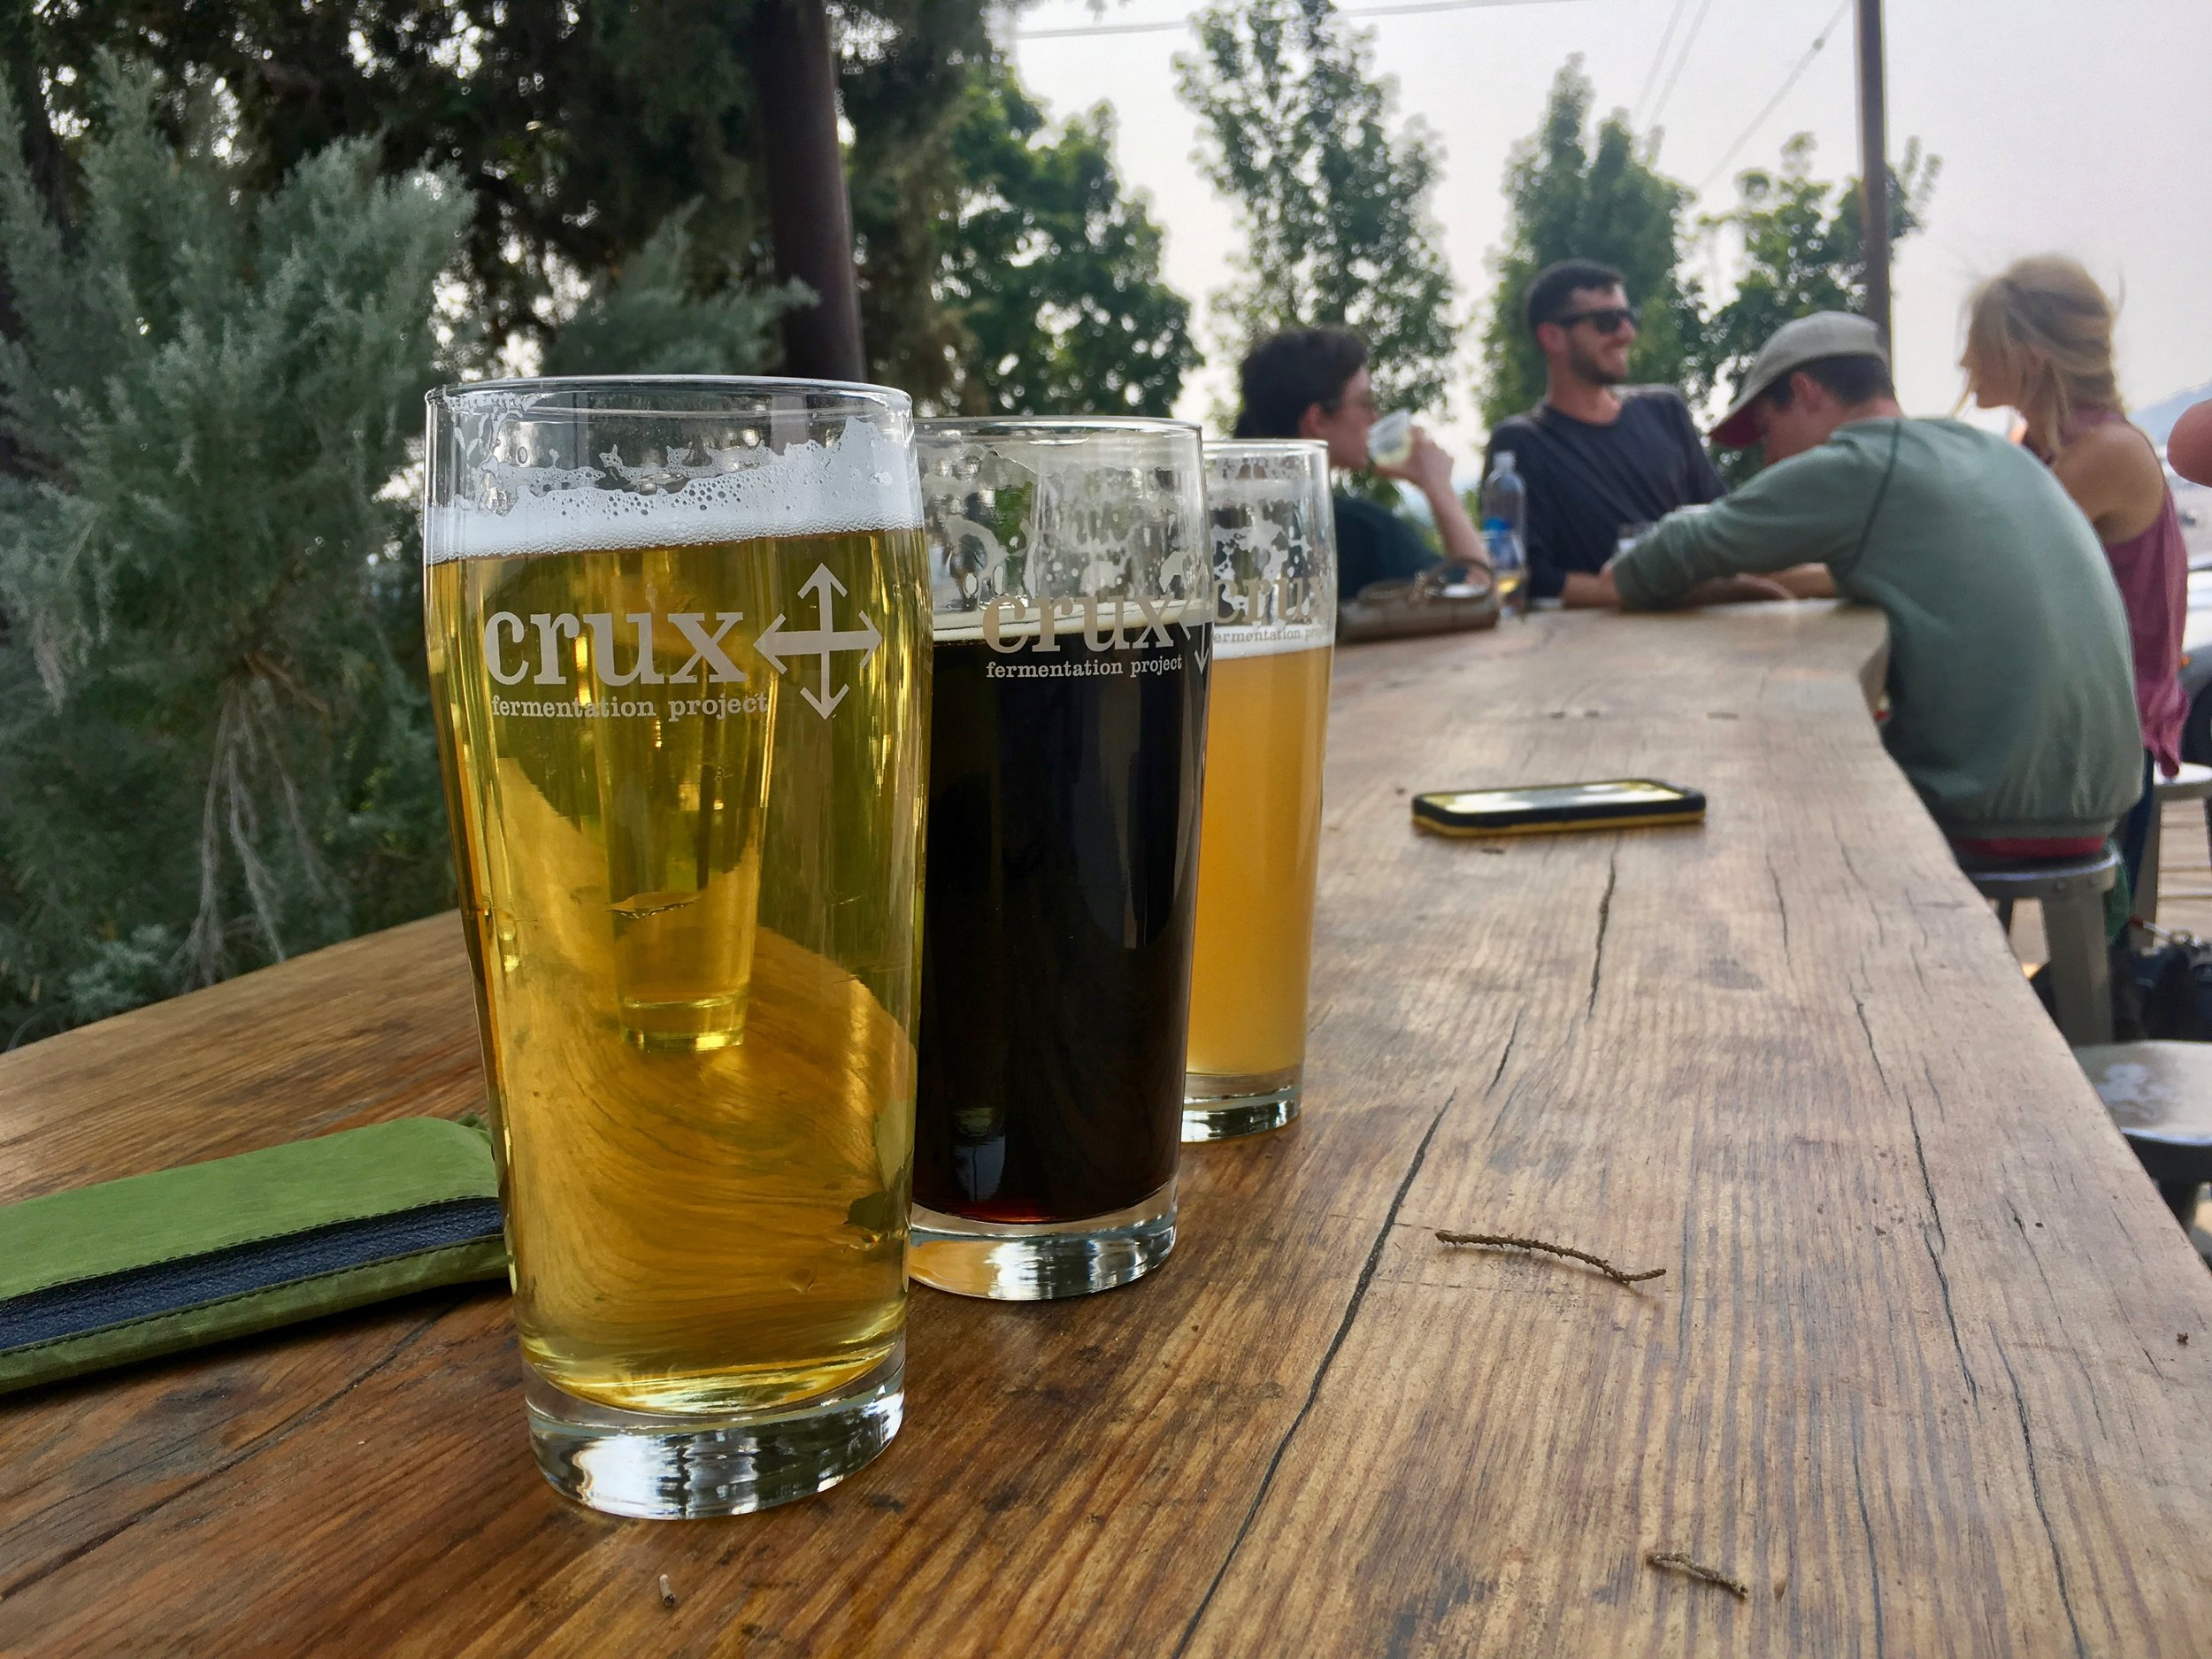 Free hiker beer at Crux Brewery in Bend,OR. Thanks, Crux!